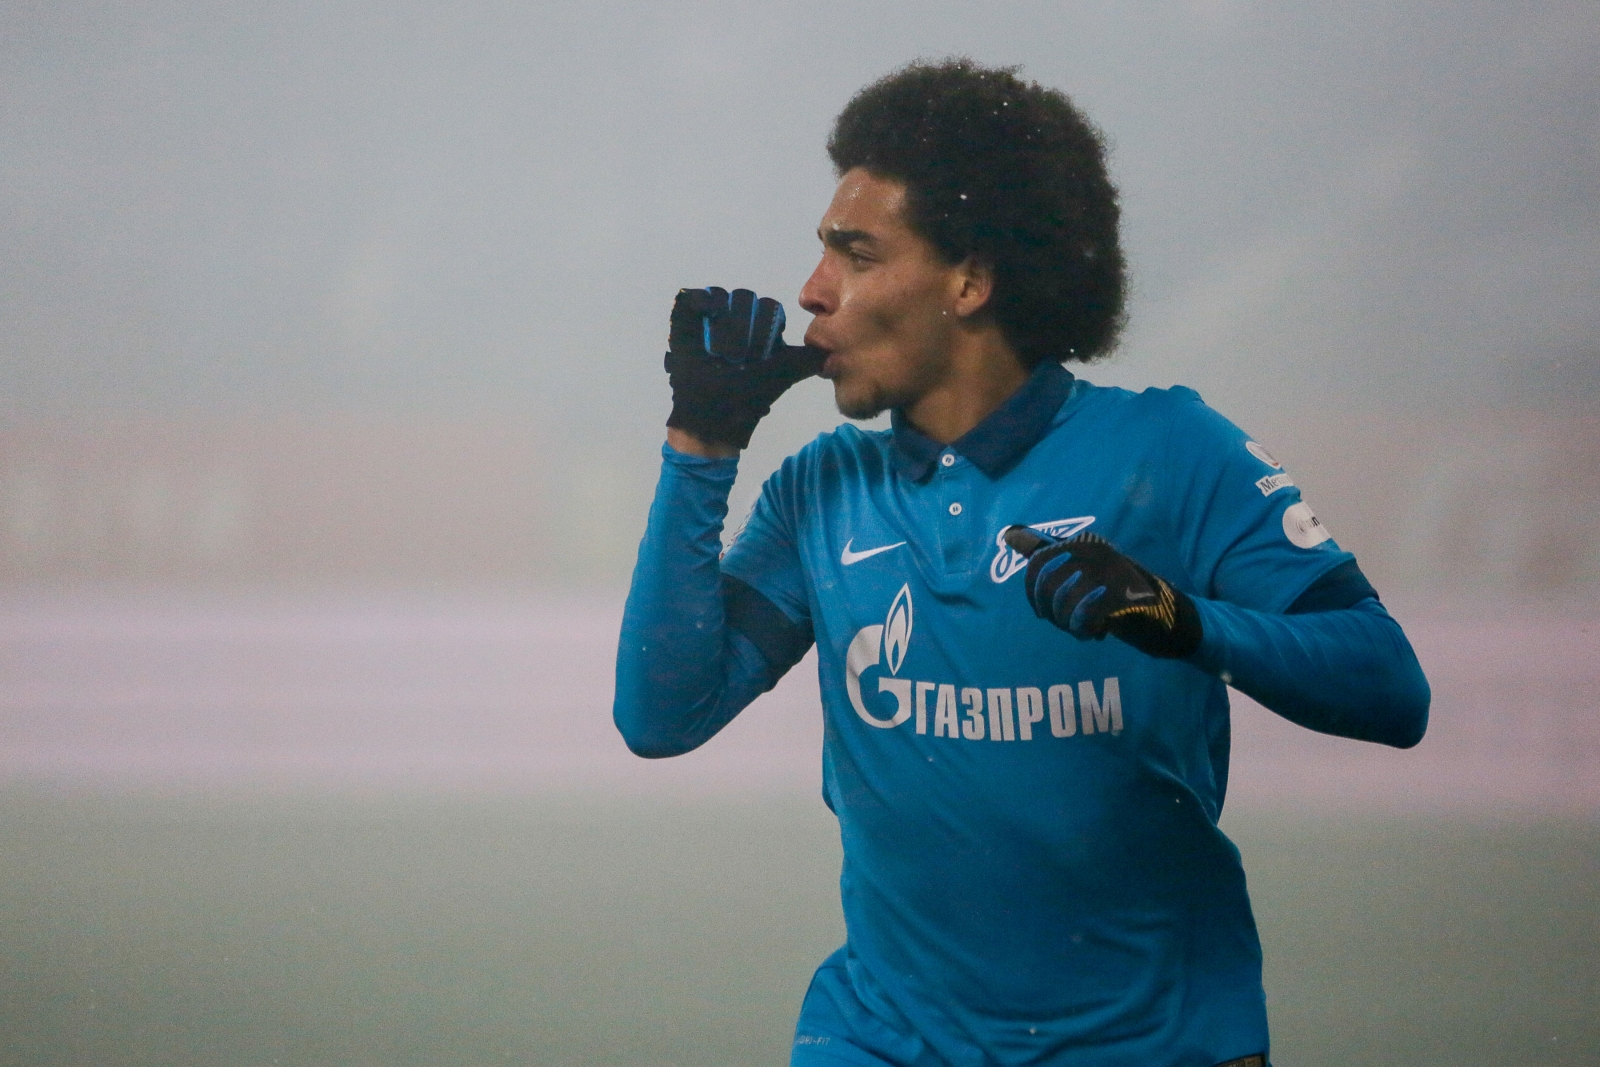 Zenit St Petersburg midfielder Axel Witsel reveals his admiration for Manchester United